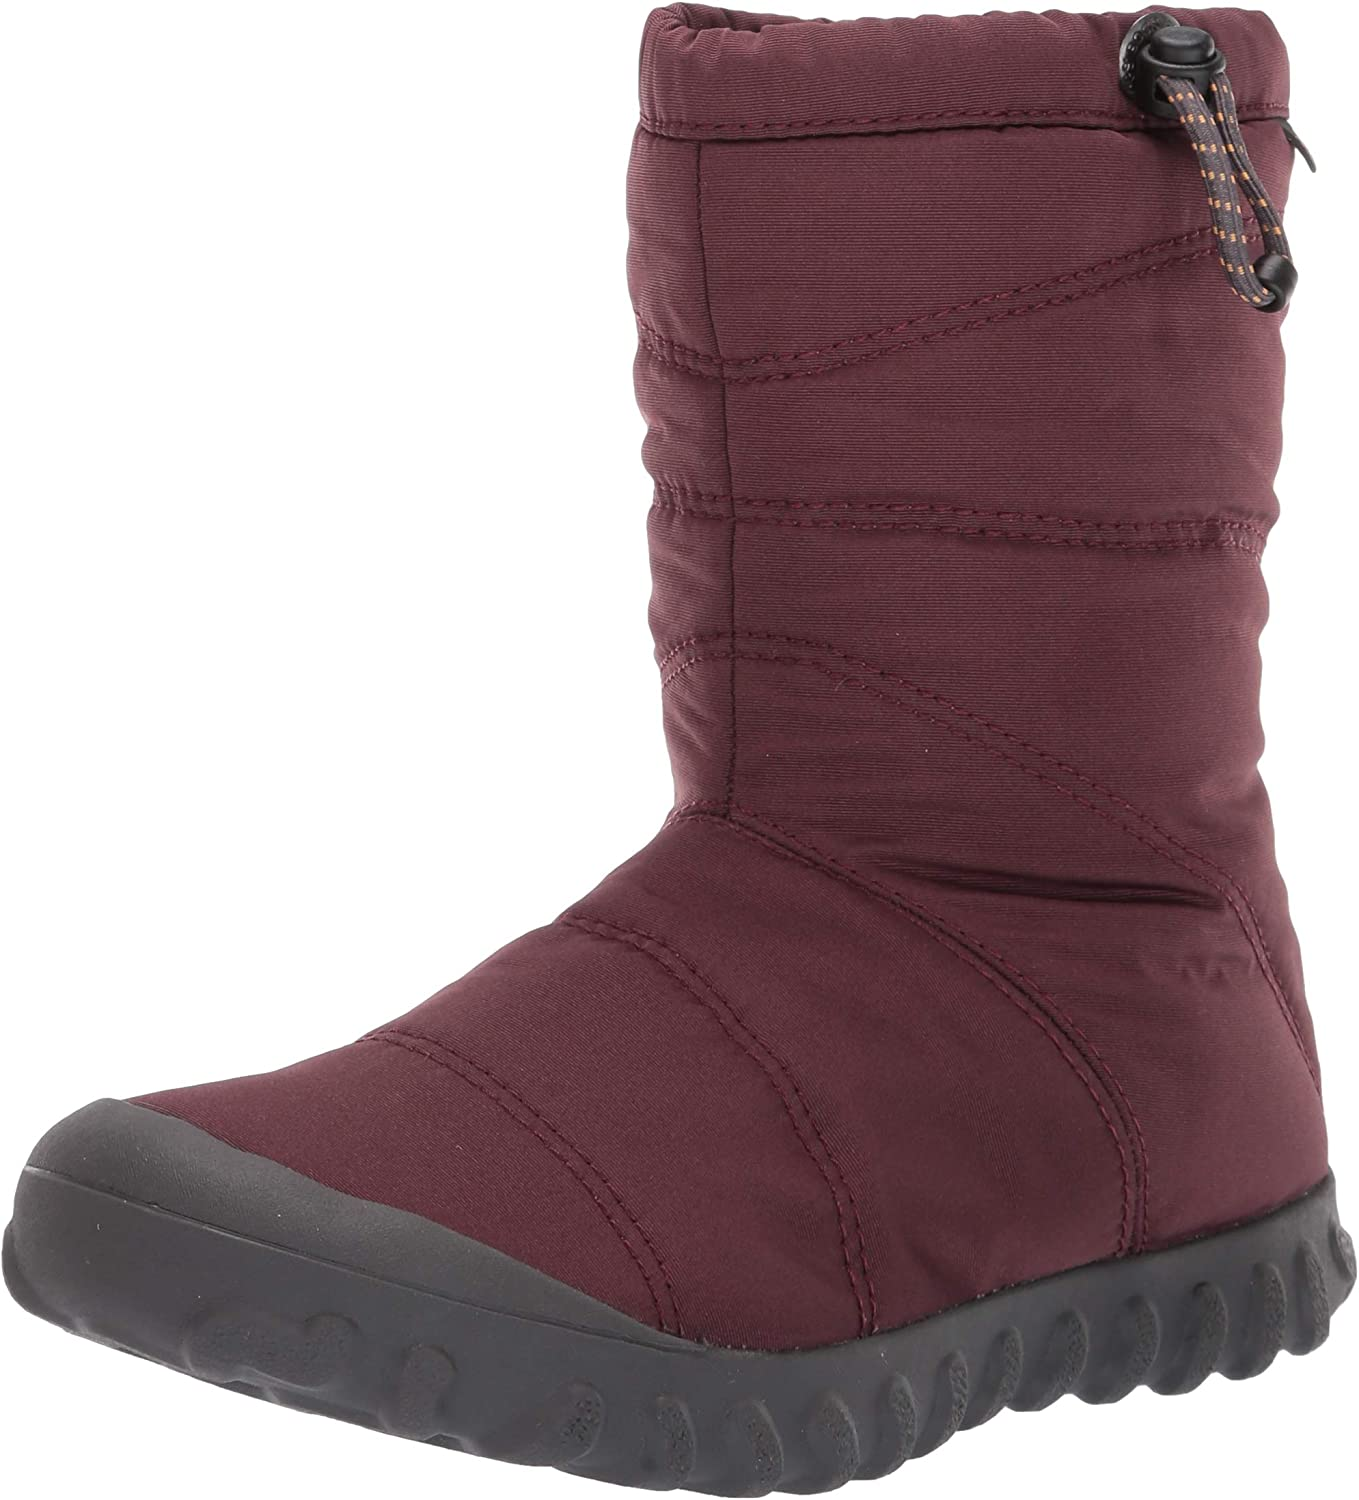 Bogs Women/'s B Puffy Mid Various Sizes and Colors